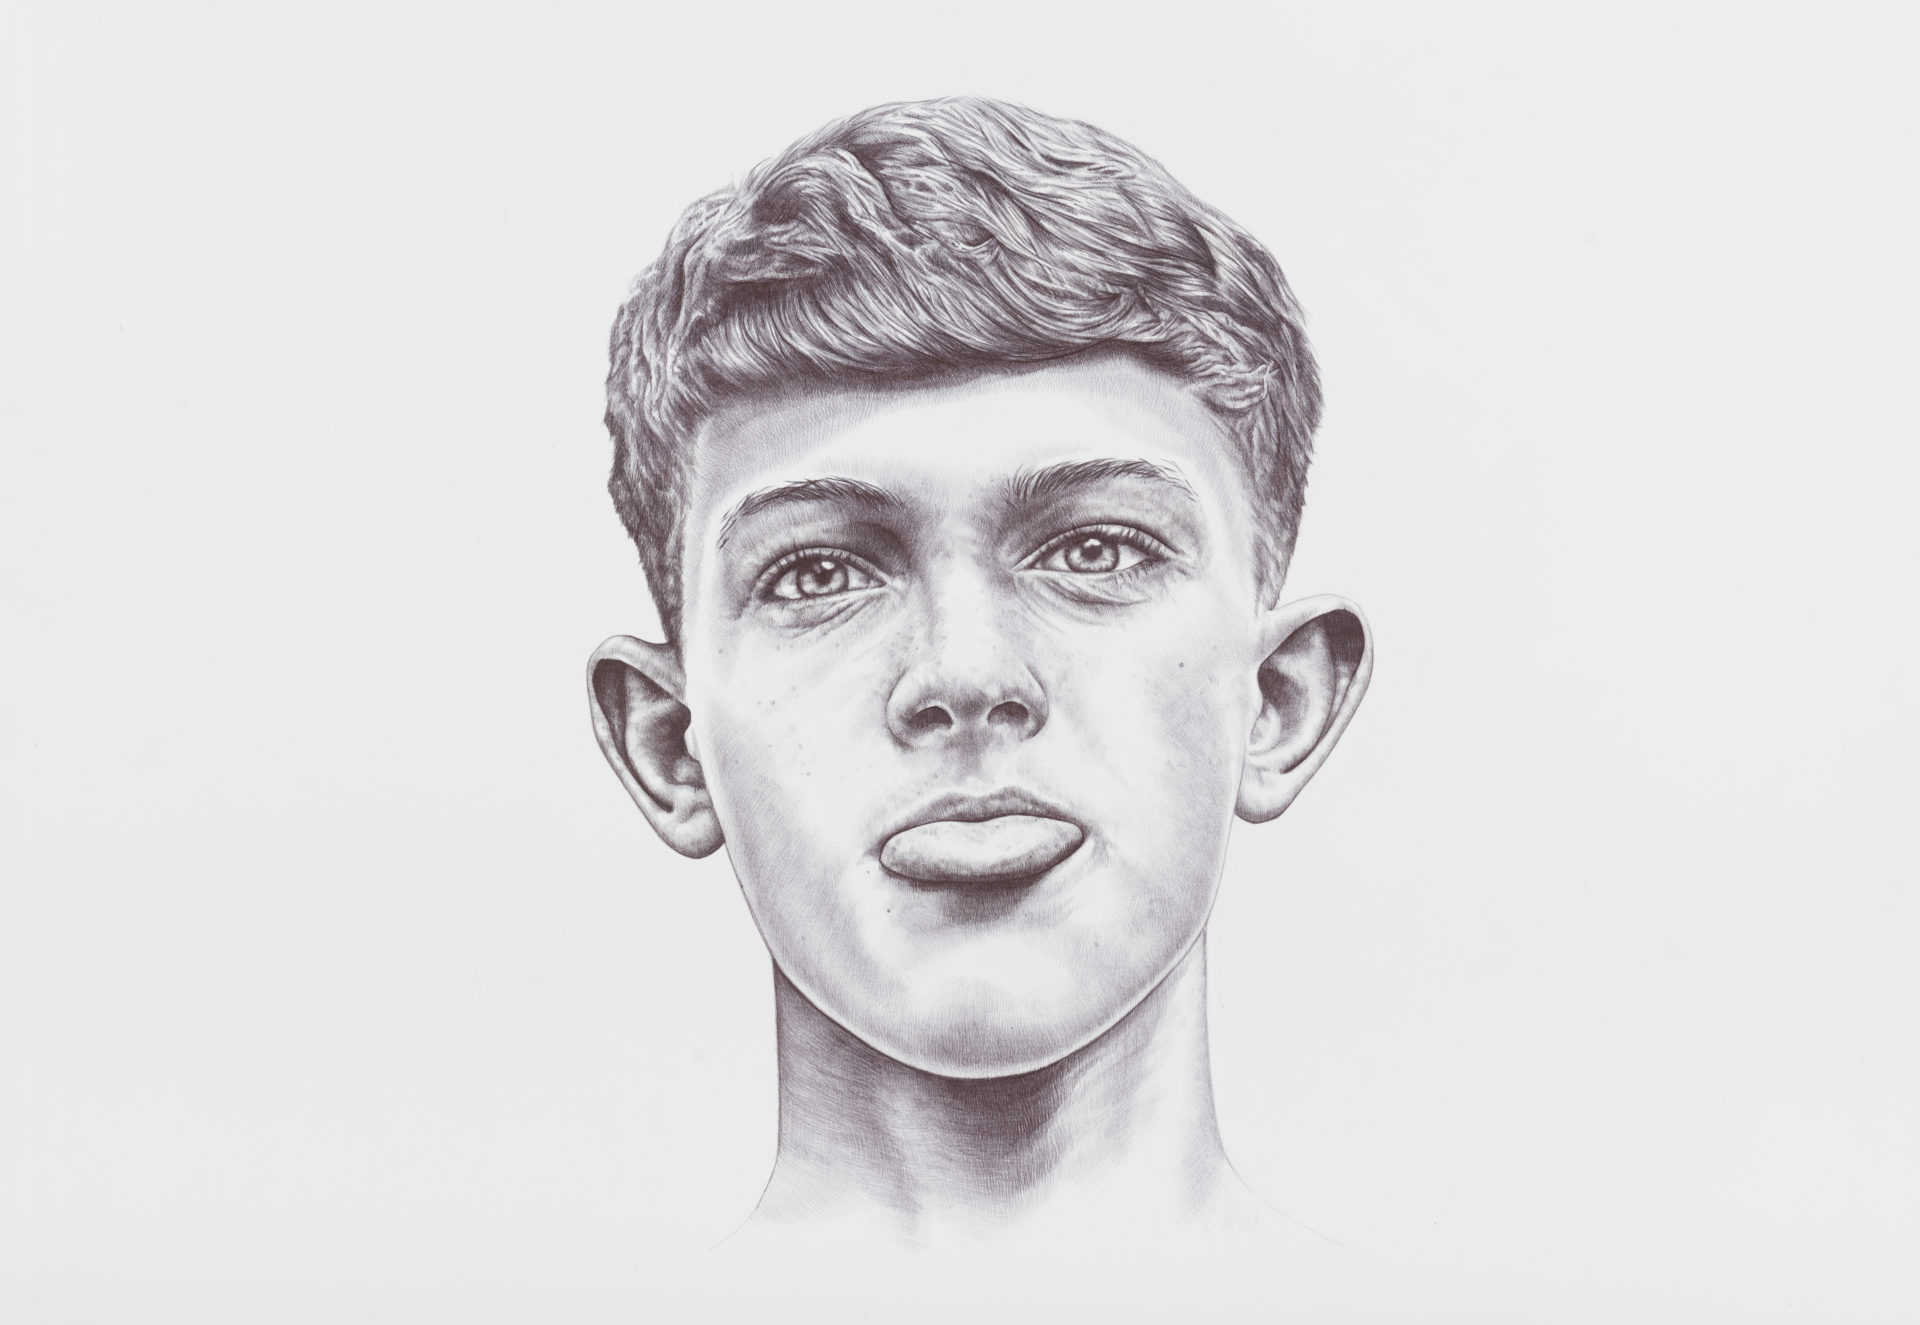 Timmy, stylo bic noir sur papier, 73 x 53 cm, 2014, Collection privée